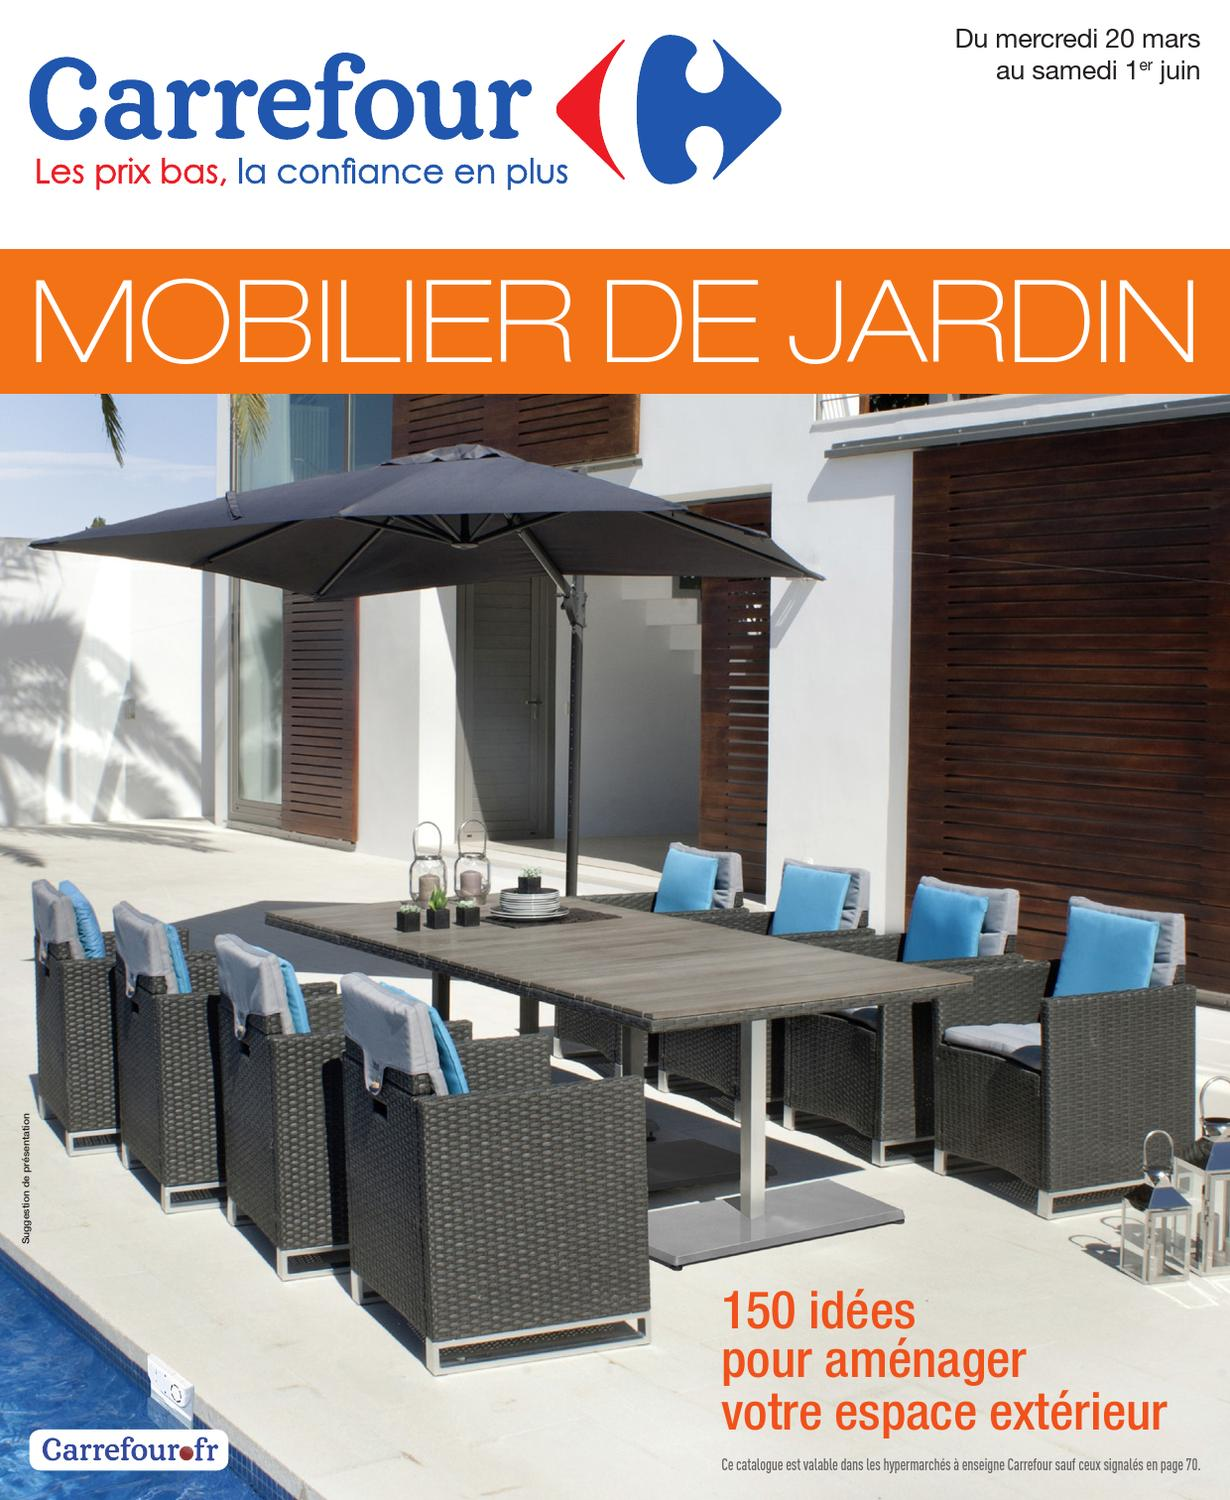 Issuu carrefour 20 3 1 6 2013 by proomo france for Table exterieur carrefour